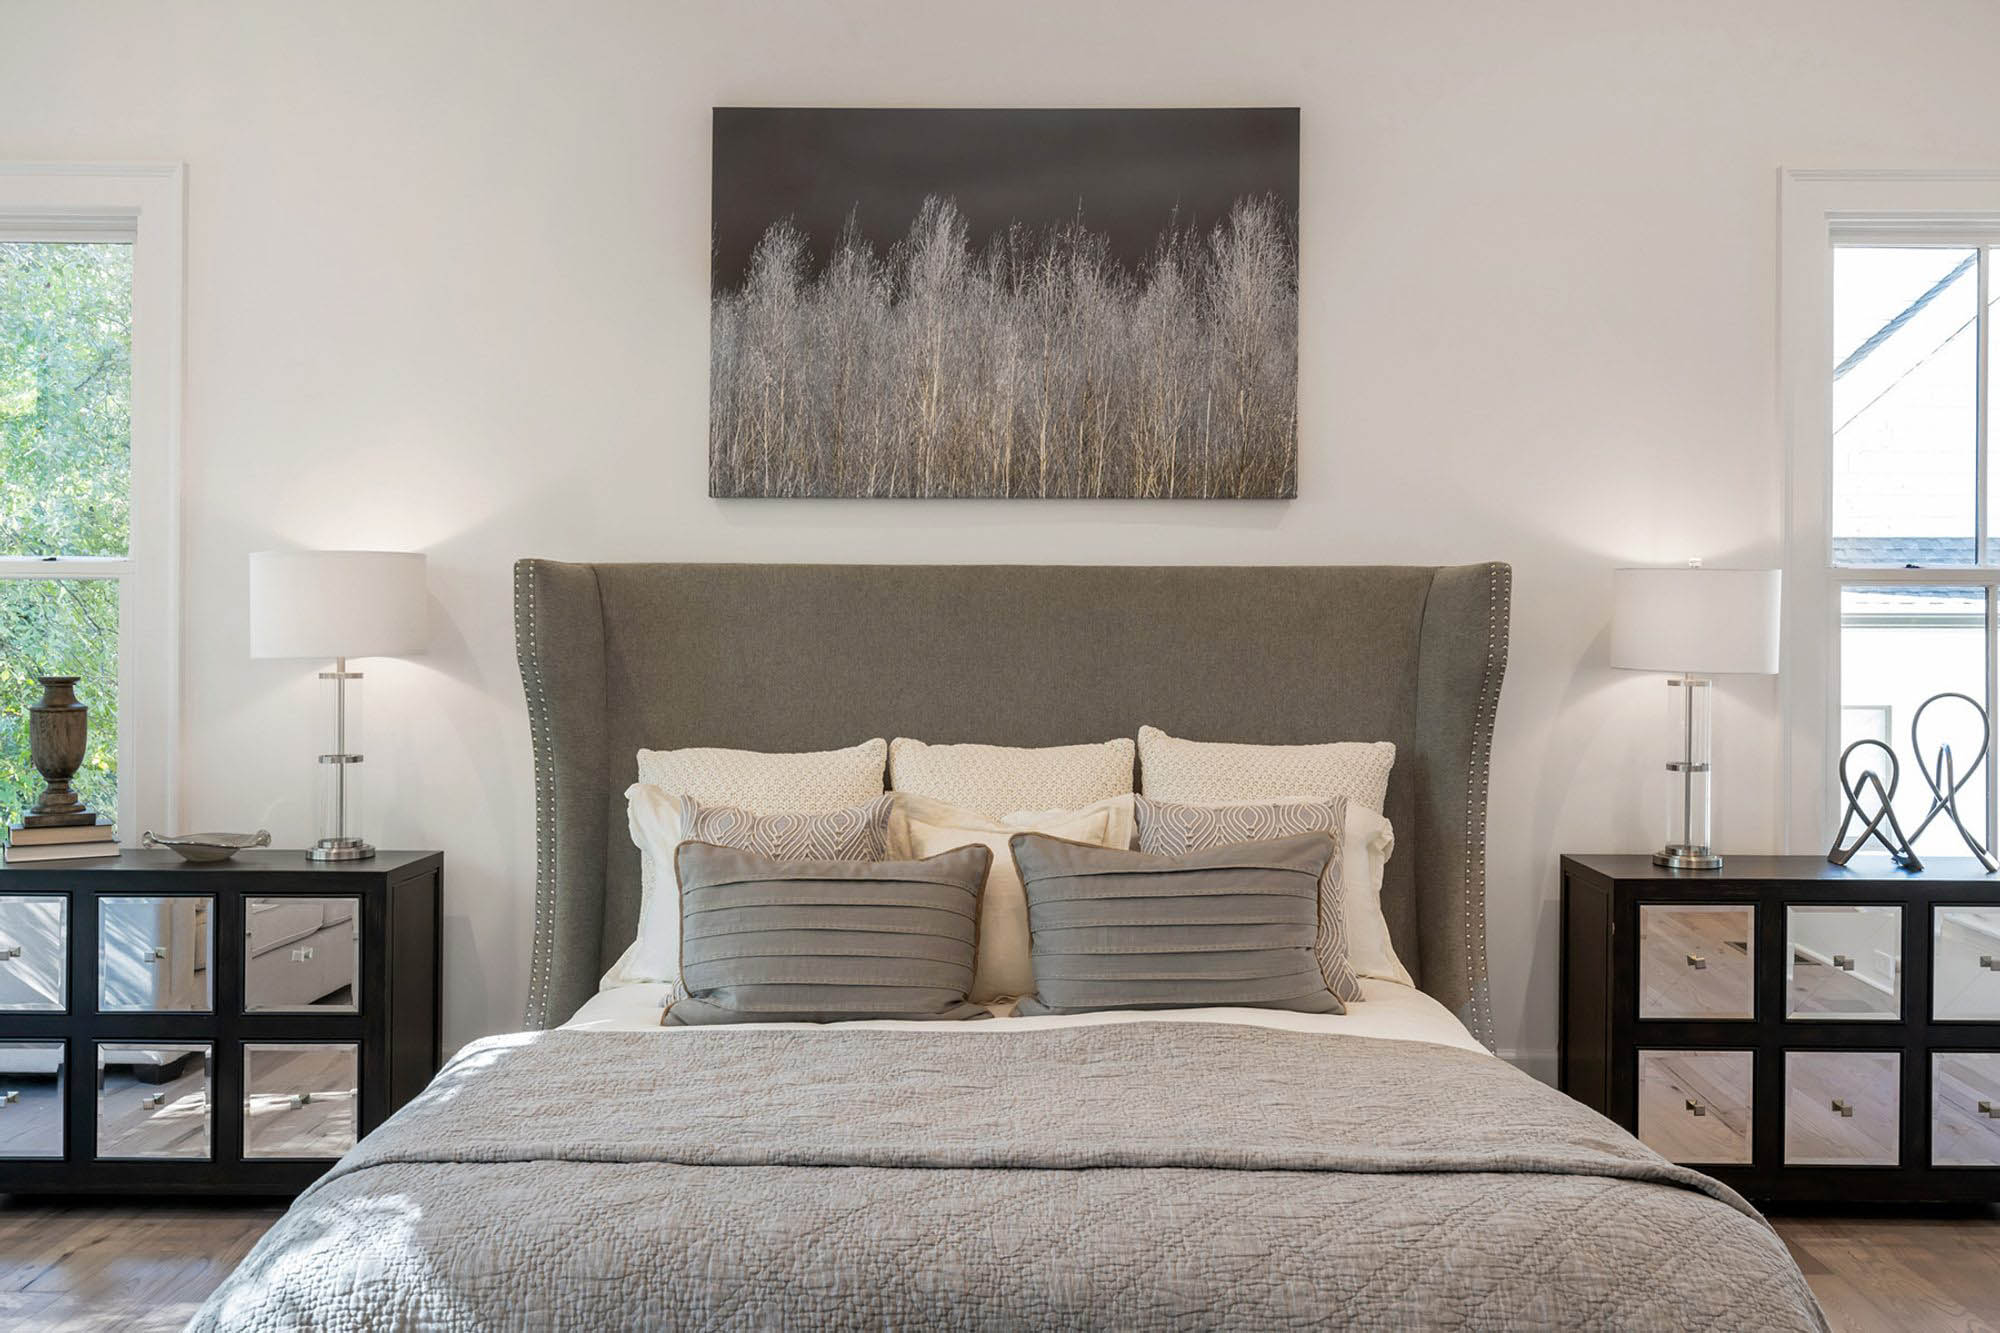 plush gray headboard with gray pillows and comforter black end tables white lamps